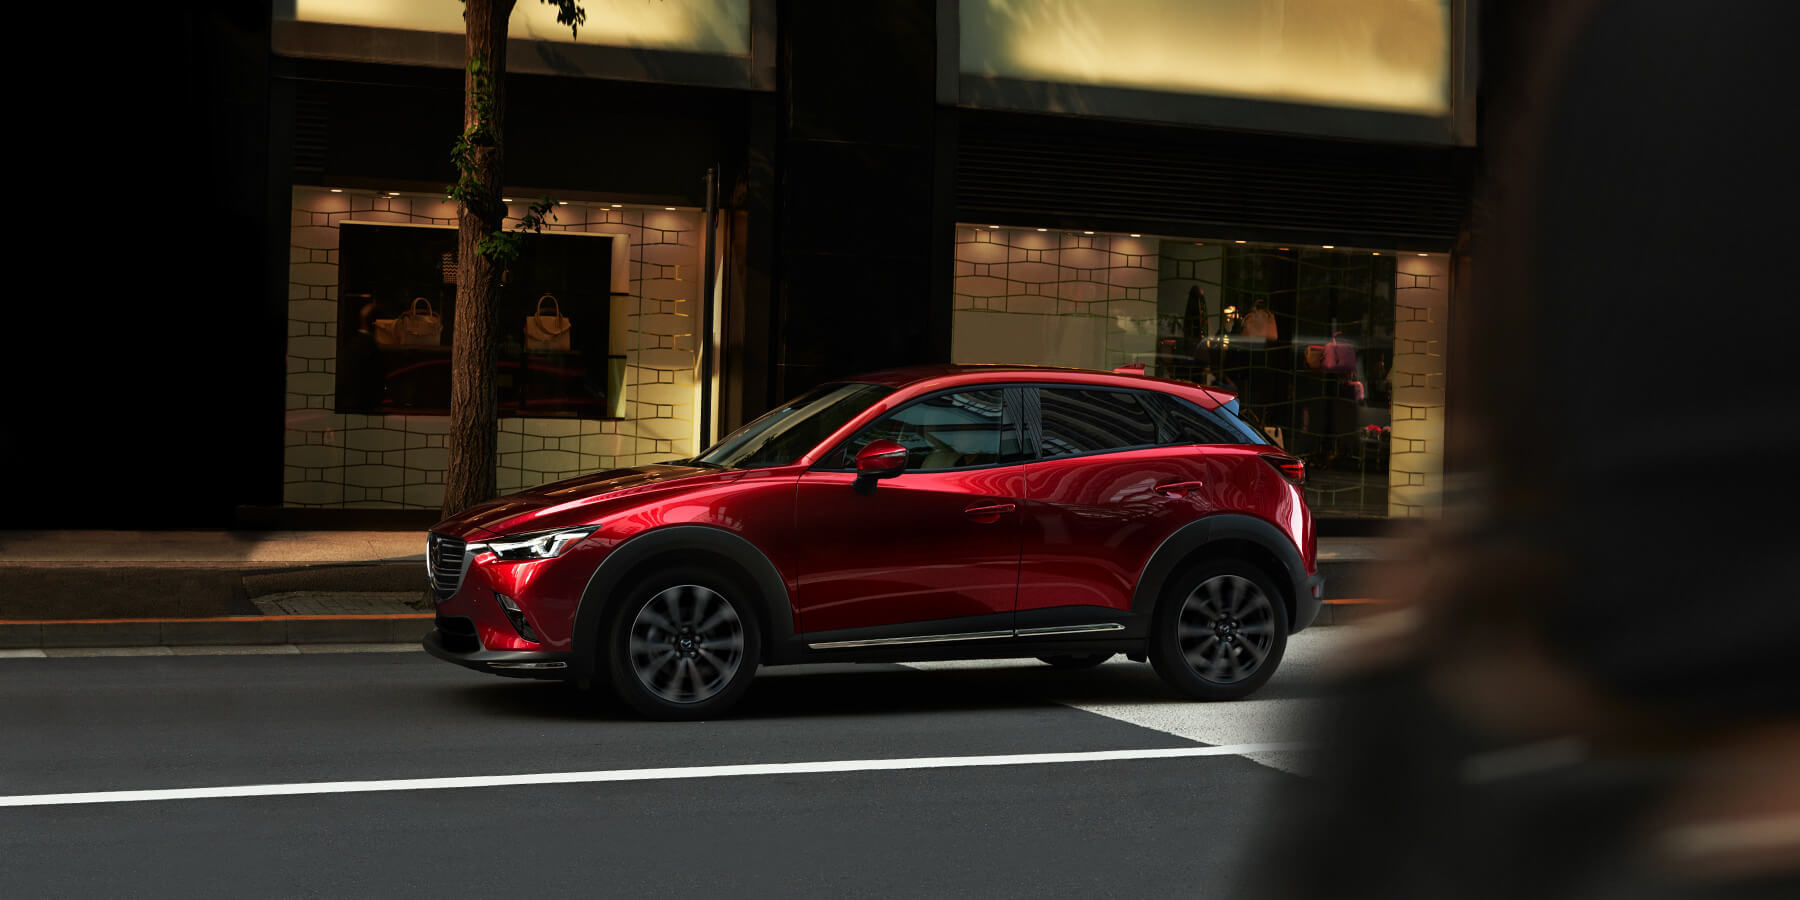 Mazda New Mazda CX-3 R 2.0L AWD 6MT I-STOP